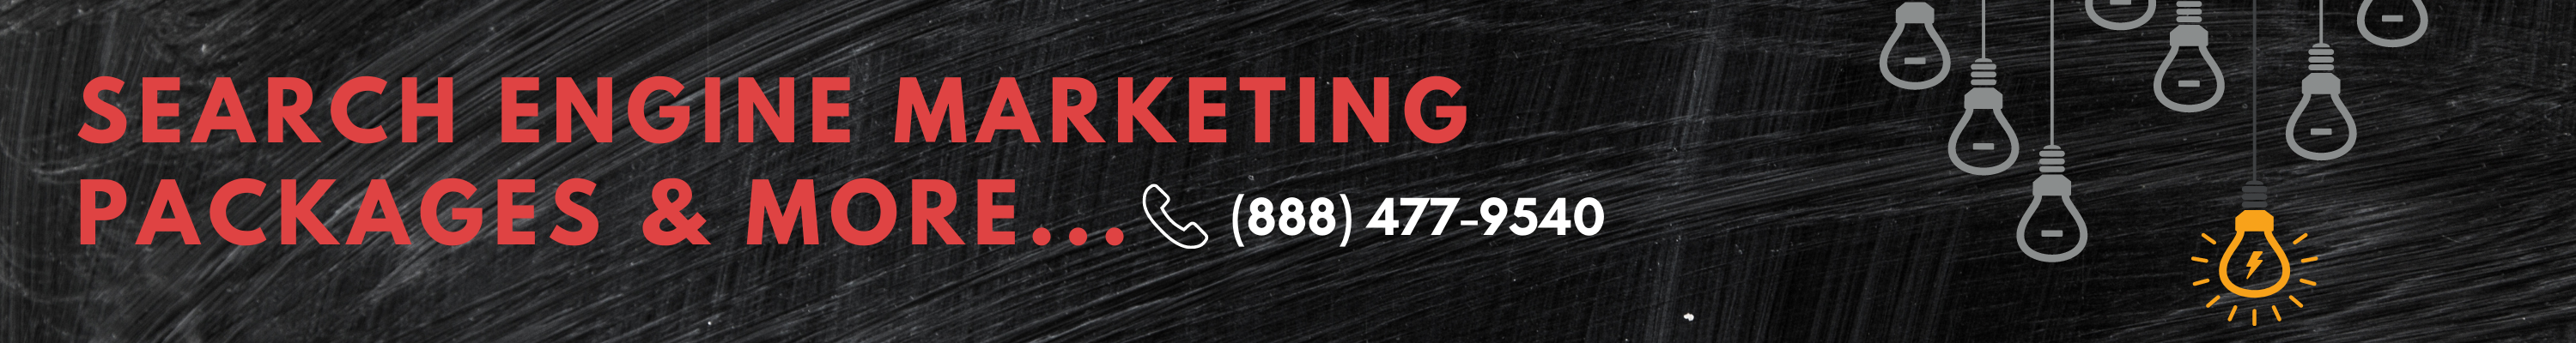 search engine marketing packages